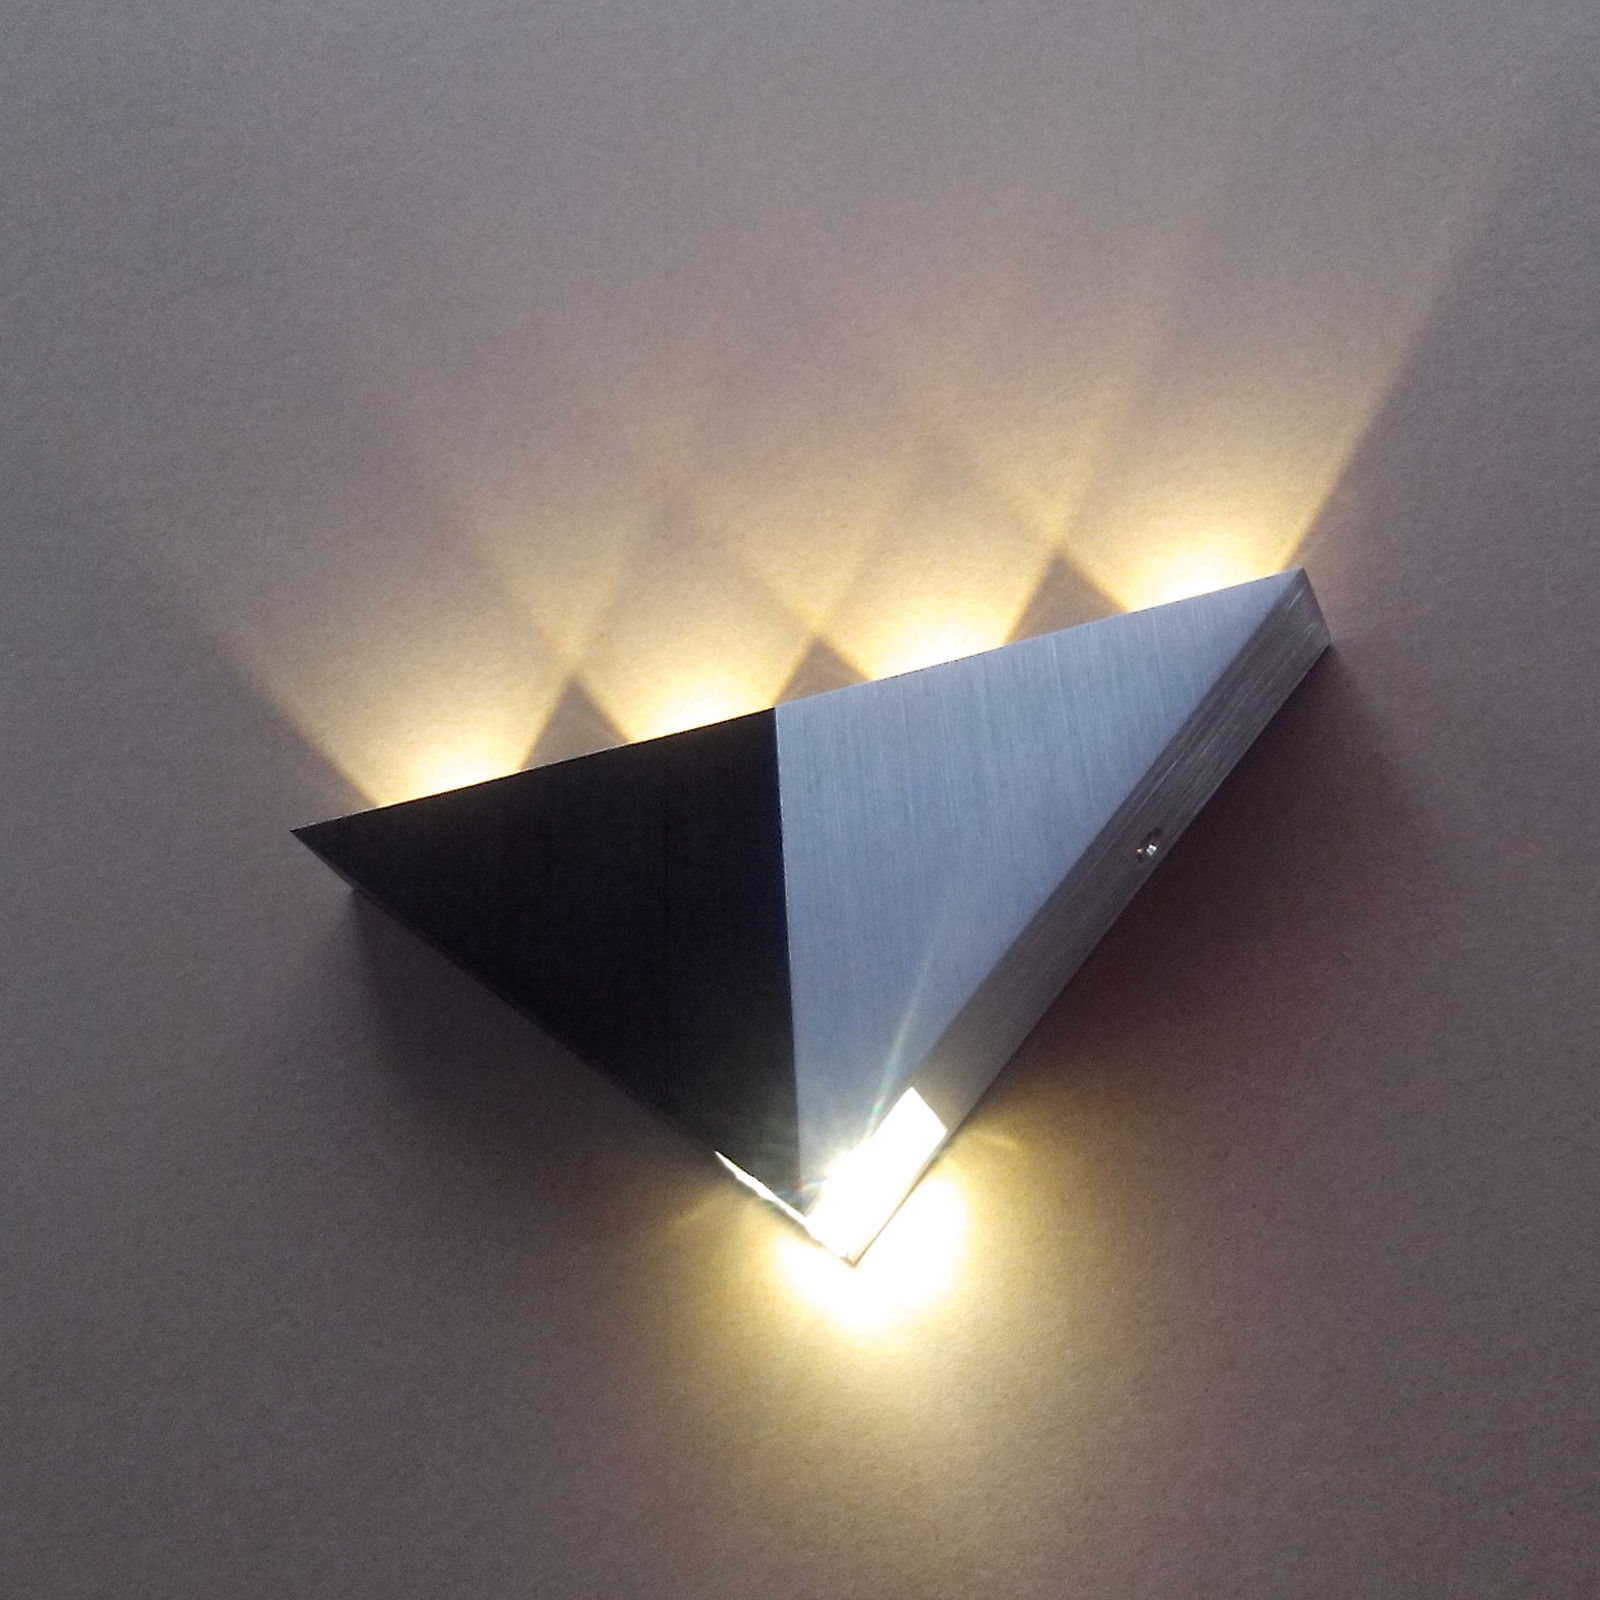 Solid Wall Lamp Led 3w Indoor Wall Light Aluminum Up Down: 5-8 LED Modern Aluminum Up Down Wall Light Sconce Indoor